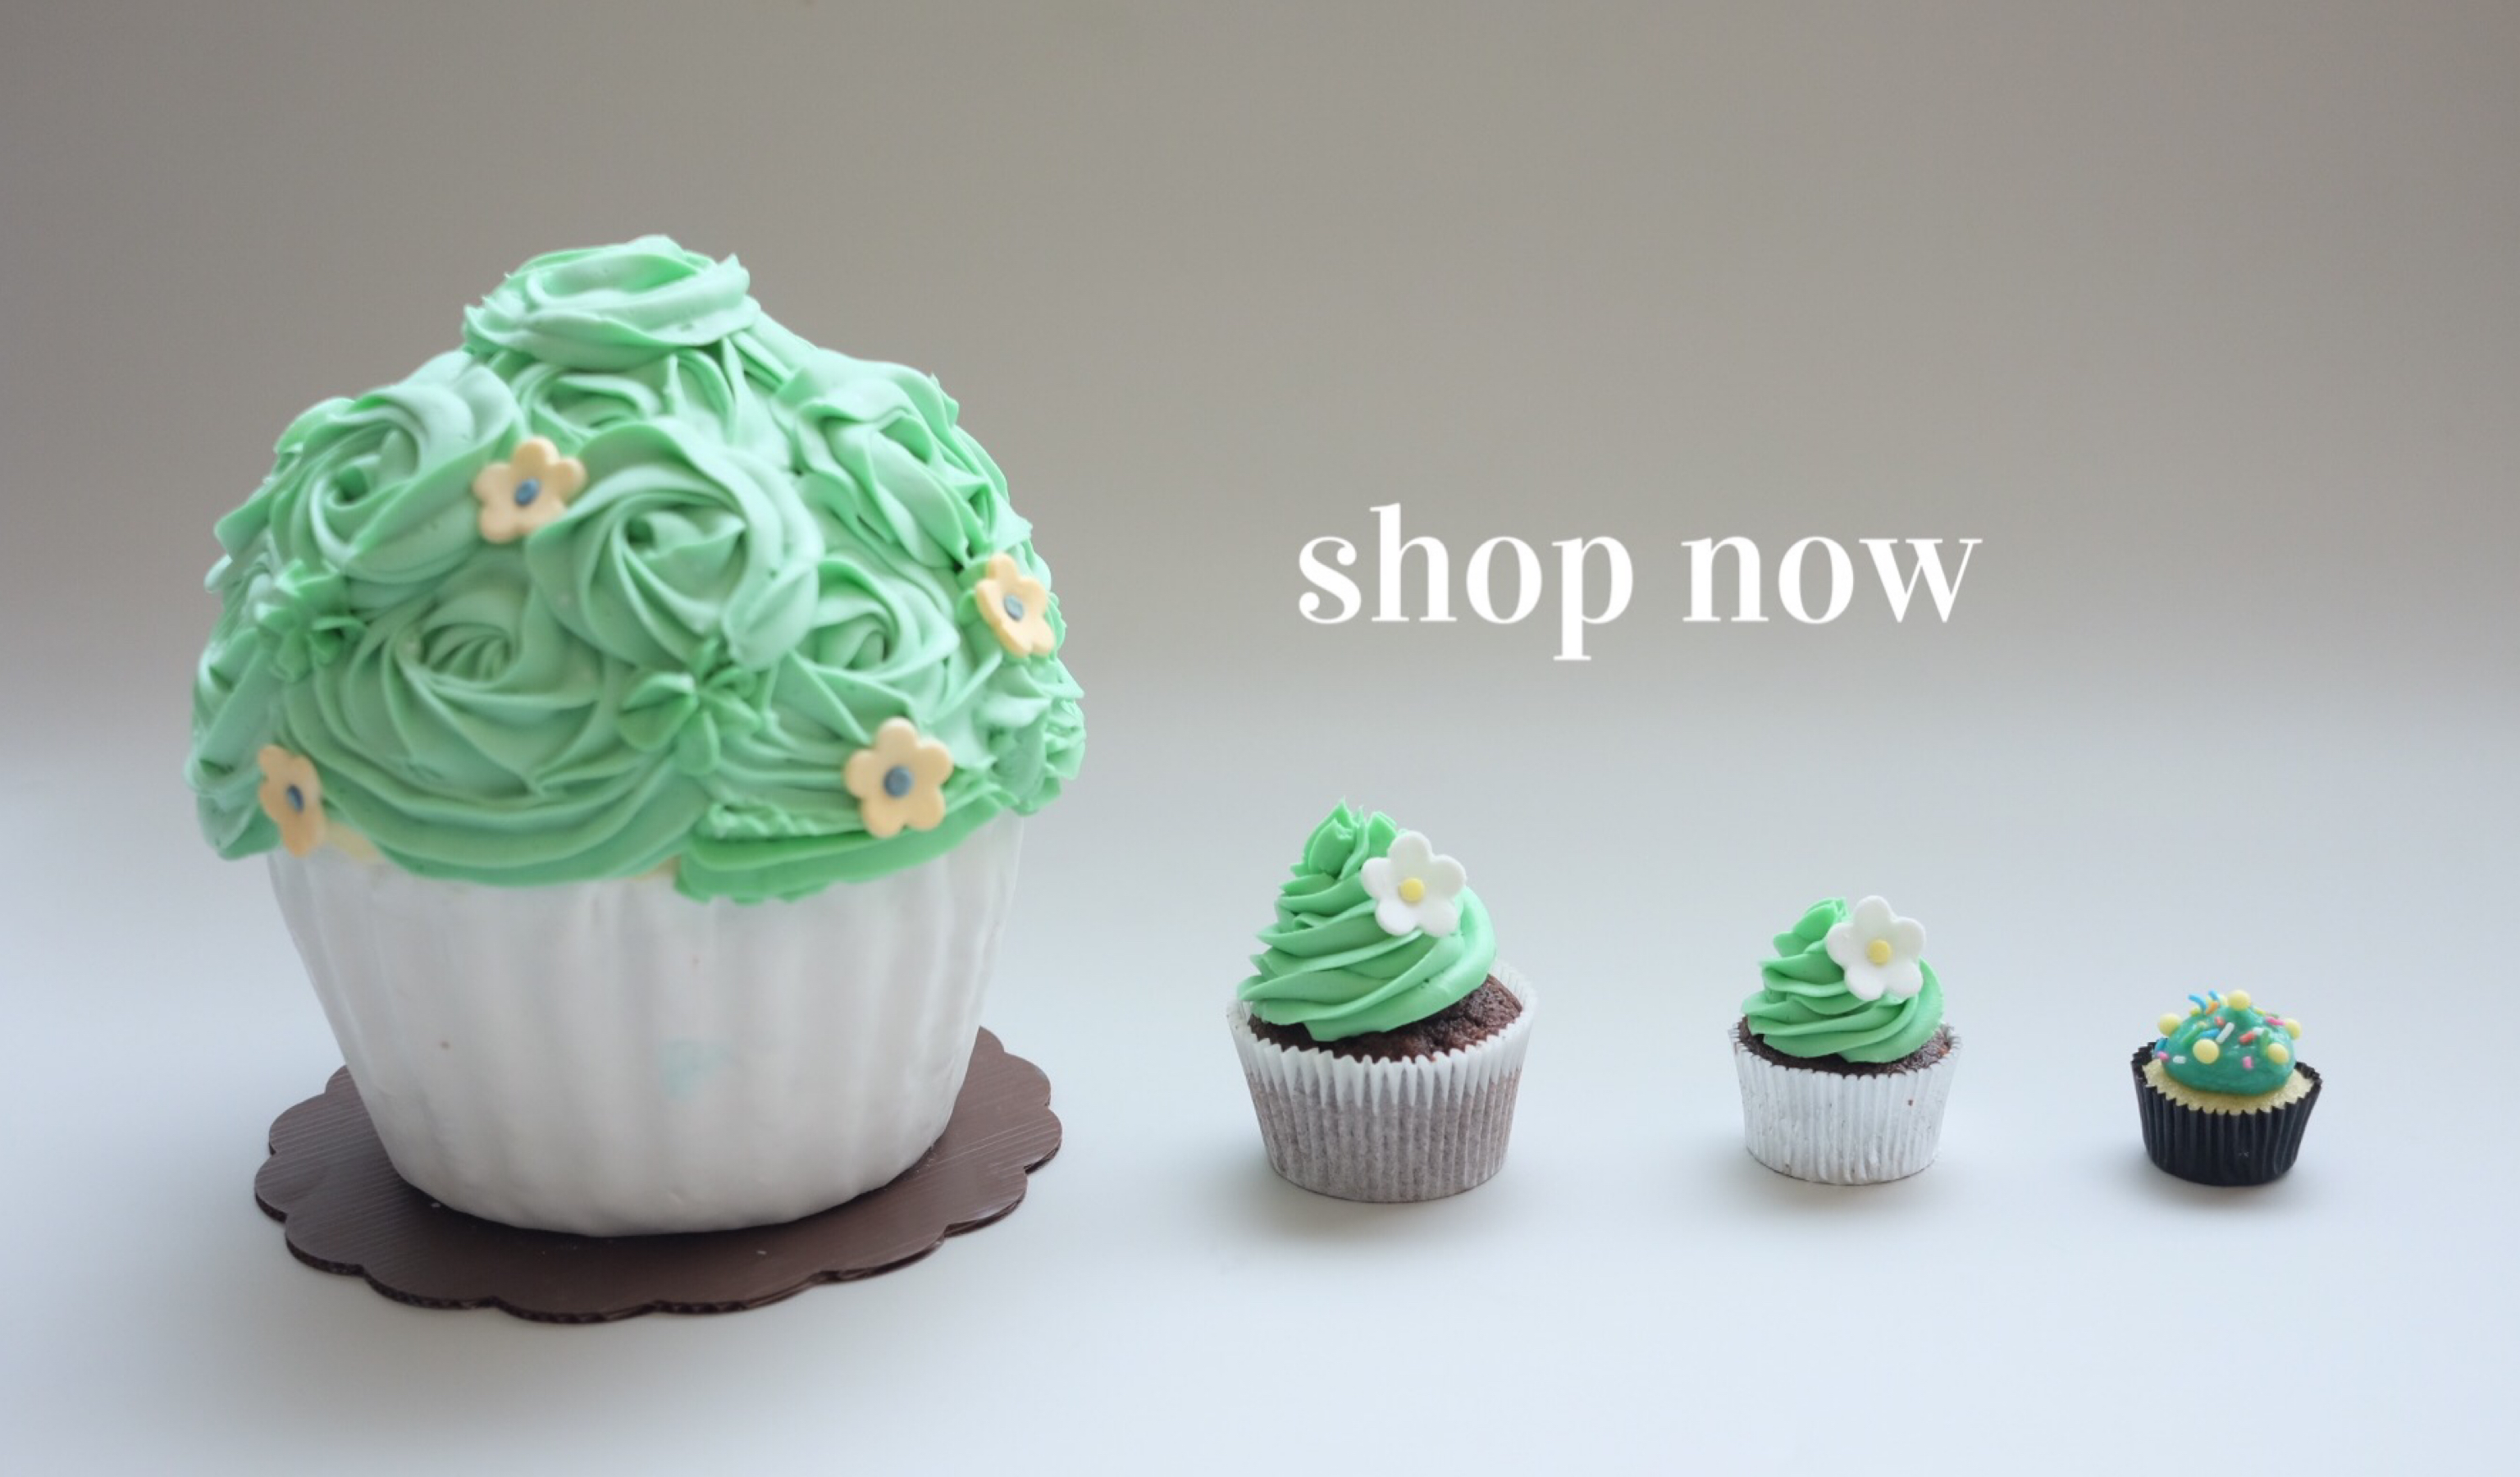 get to know our cupcakes